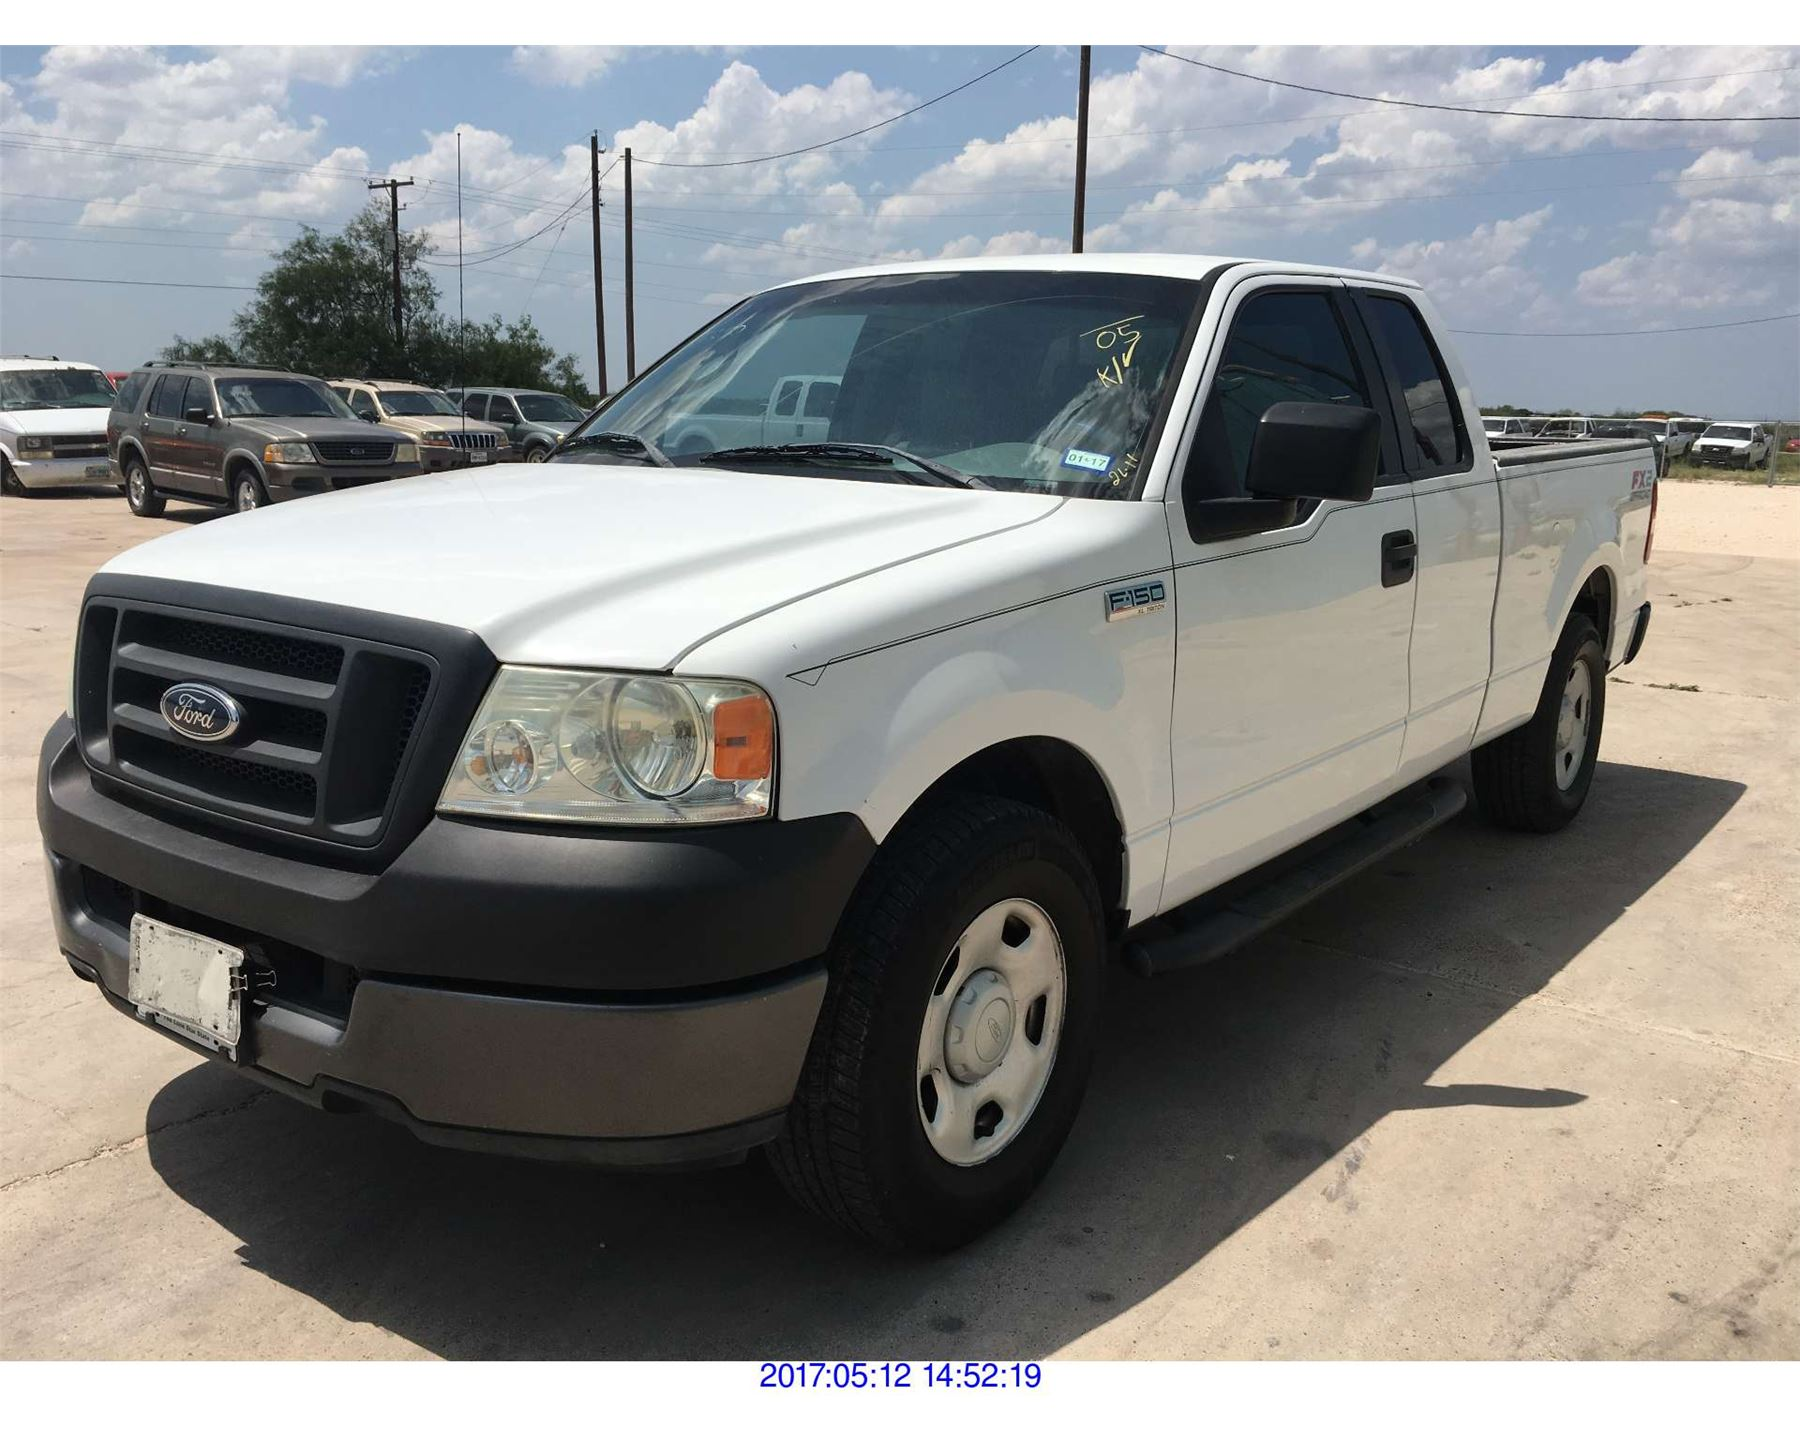 2005 ford f150 texas reg only. Black Bedroom Furniture Sets. Home Design Ideas